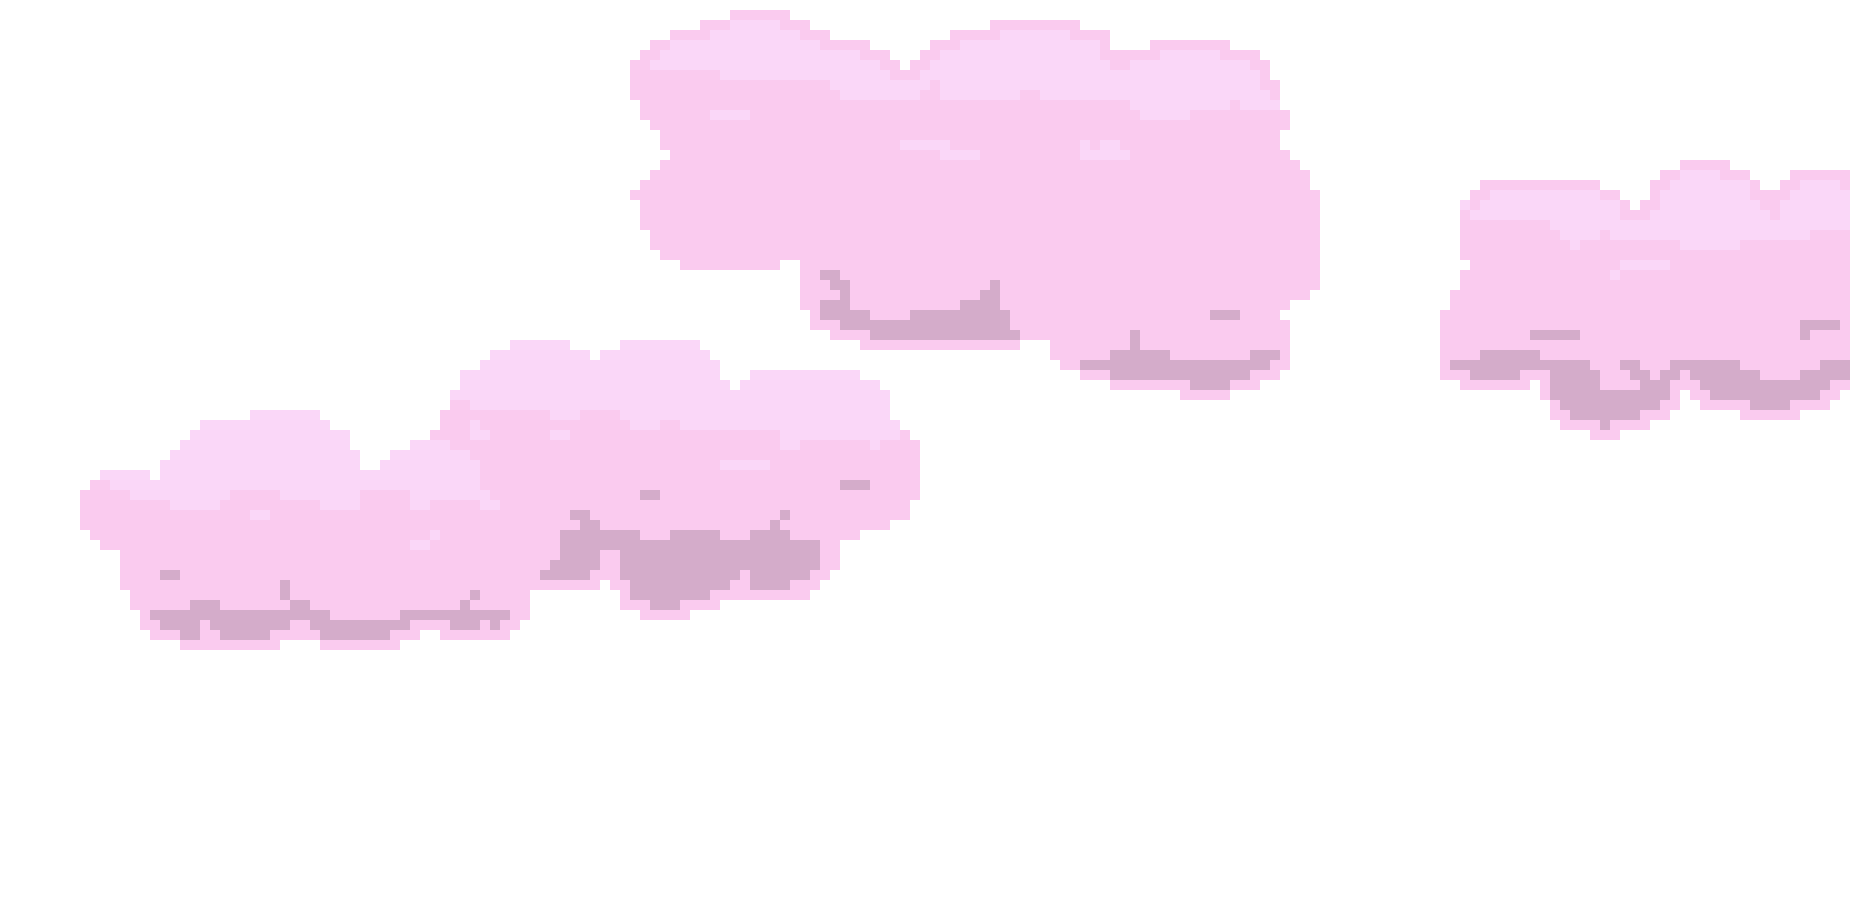 Pixel cloud png. Nine art maker